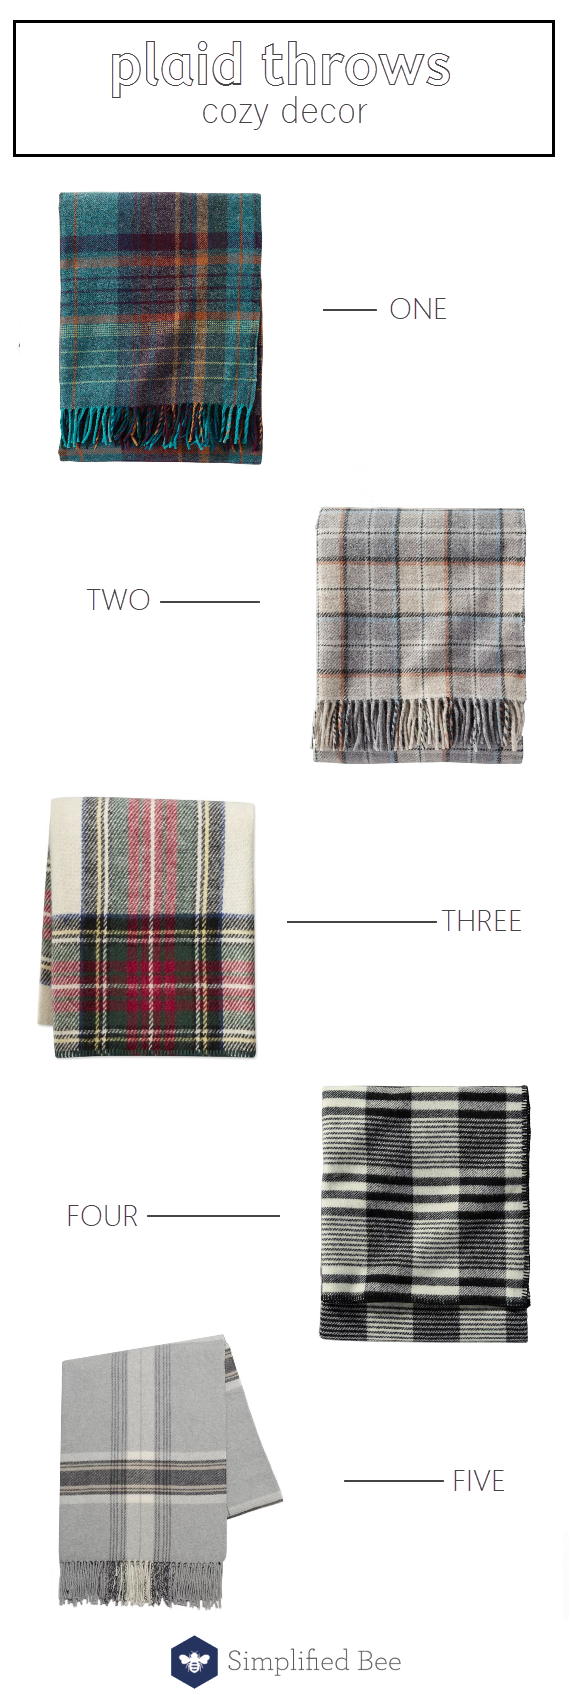 plaid throws // cozy blankets @simplifiedbee #plaid #throws